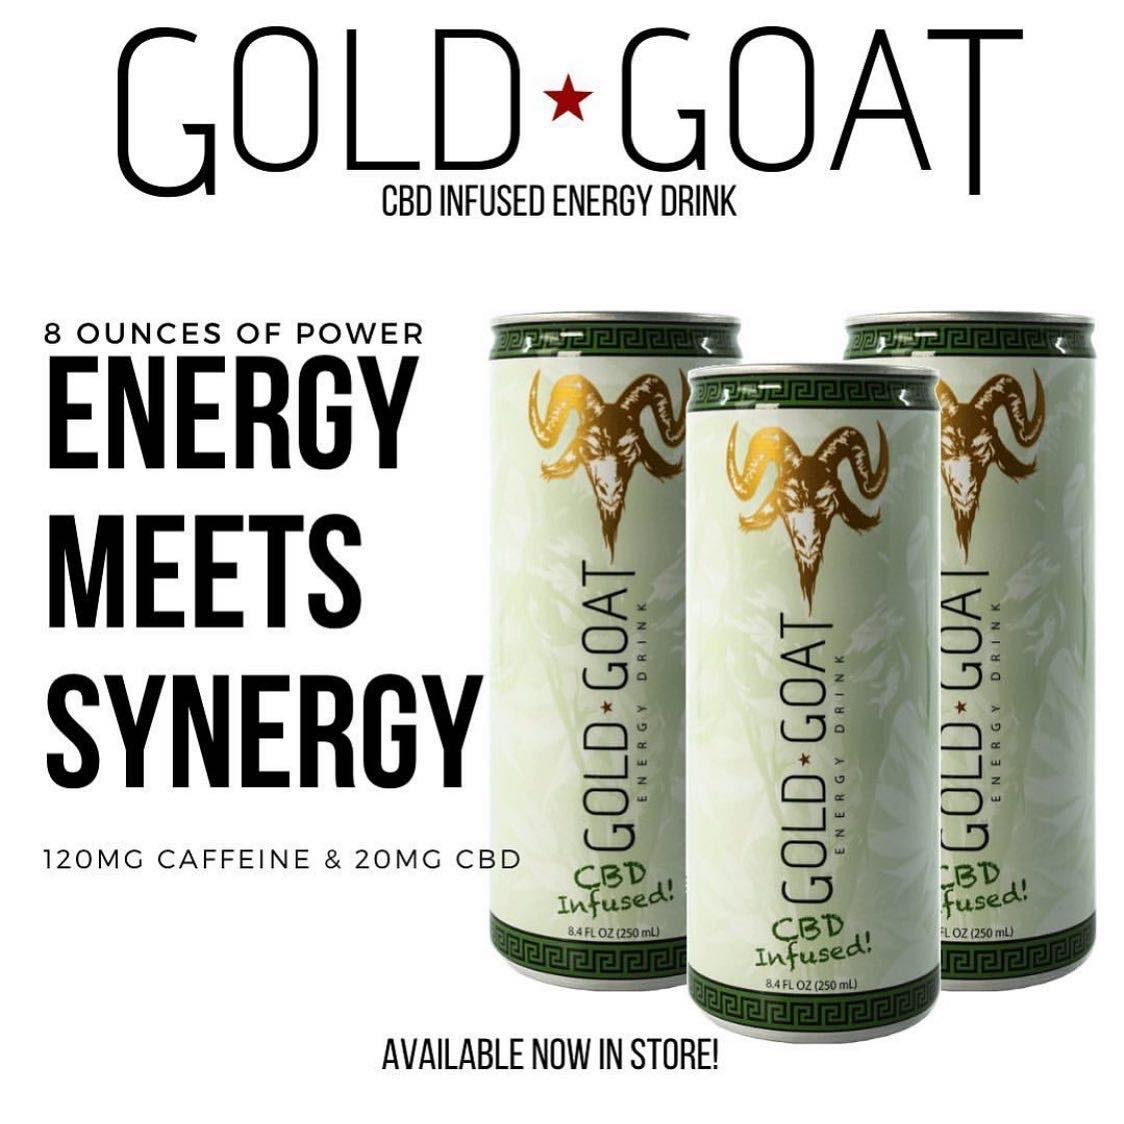 Gold Goat Energy is now offered Nationwide Through Mr. Checkout\'s Direct Store Delivery Distributors.